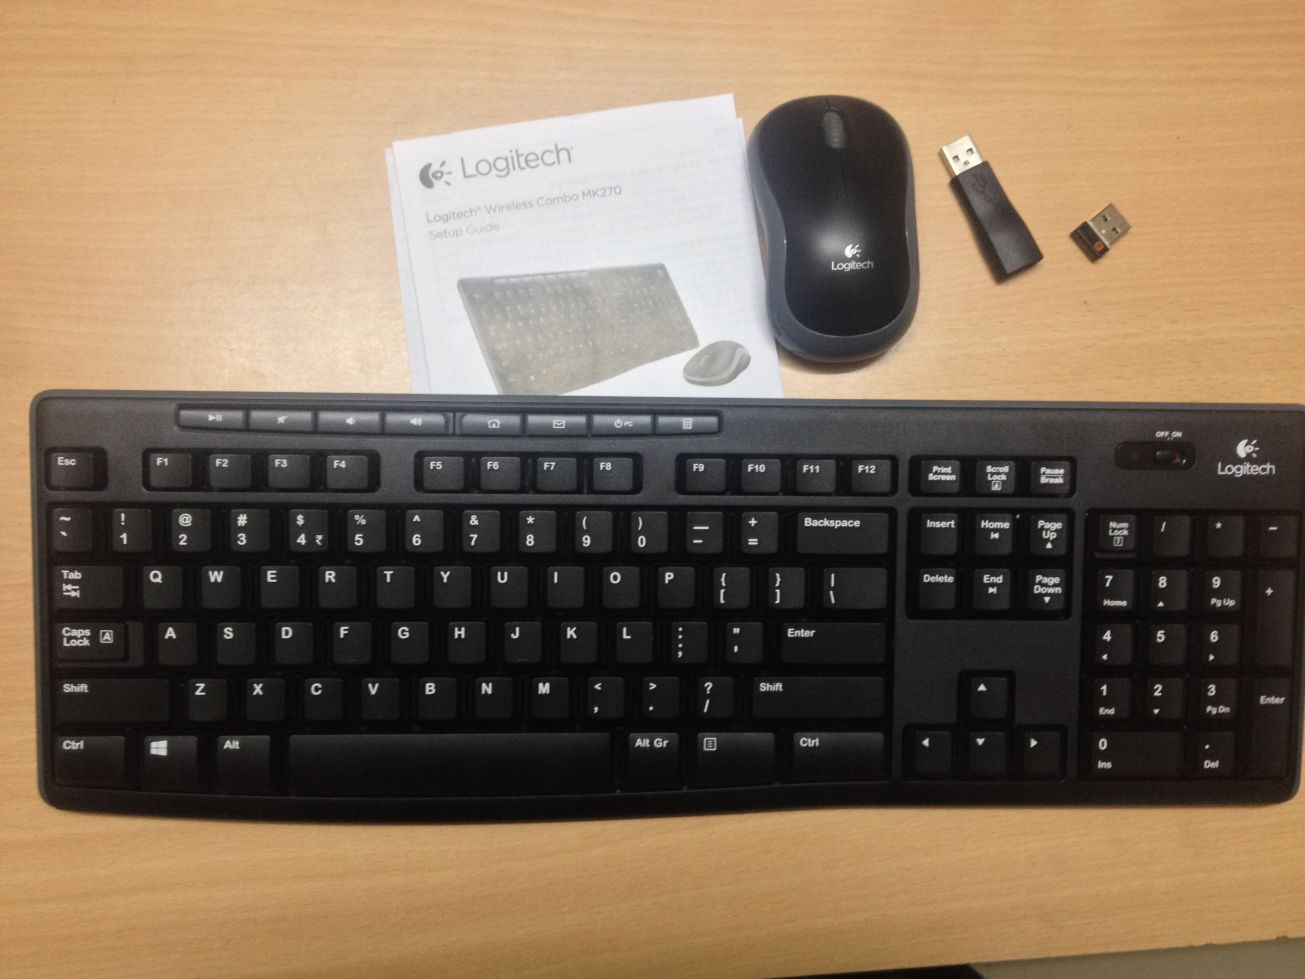 Logitech MK 270 Wireless Combo (Mouse + Keyboard) Review with Images 856d4000a8e09